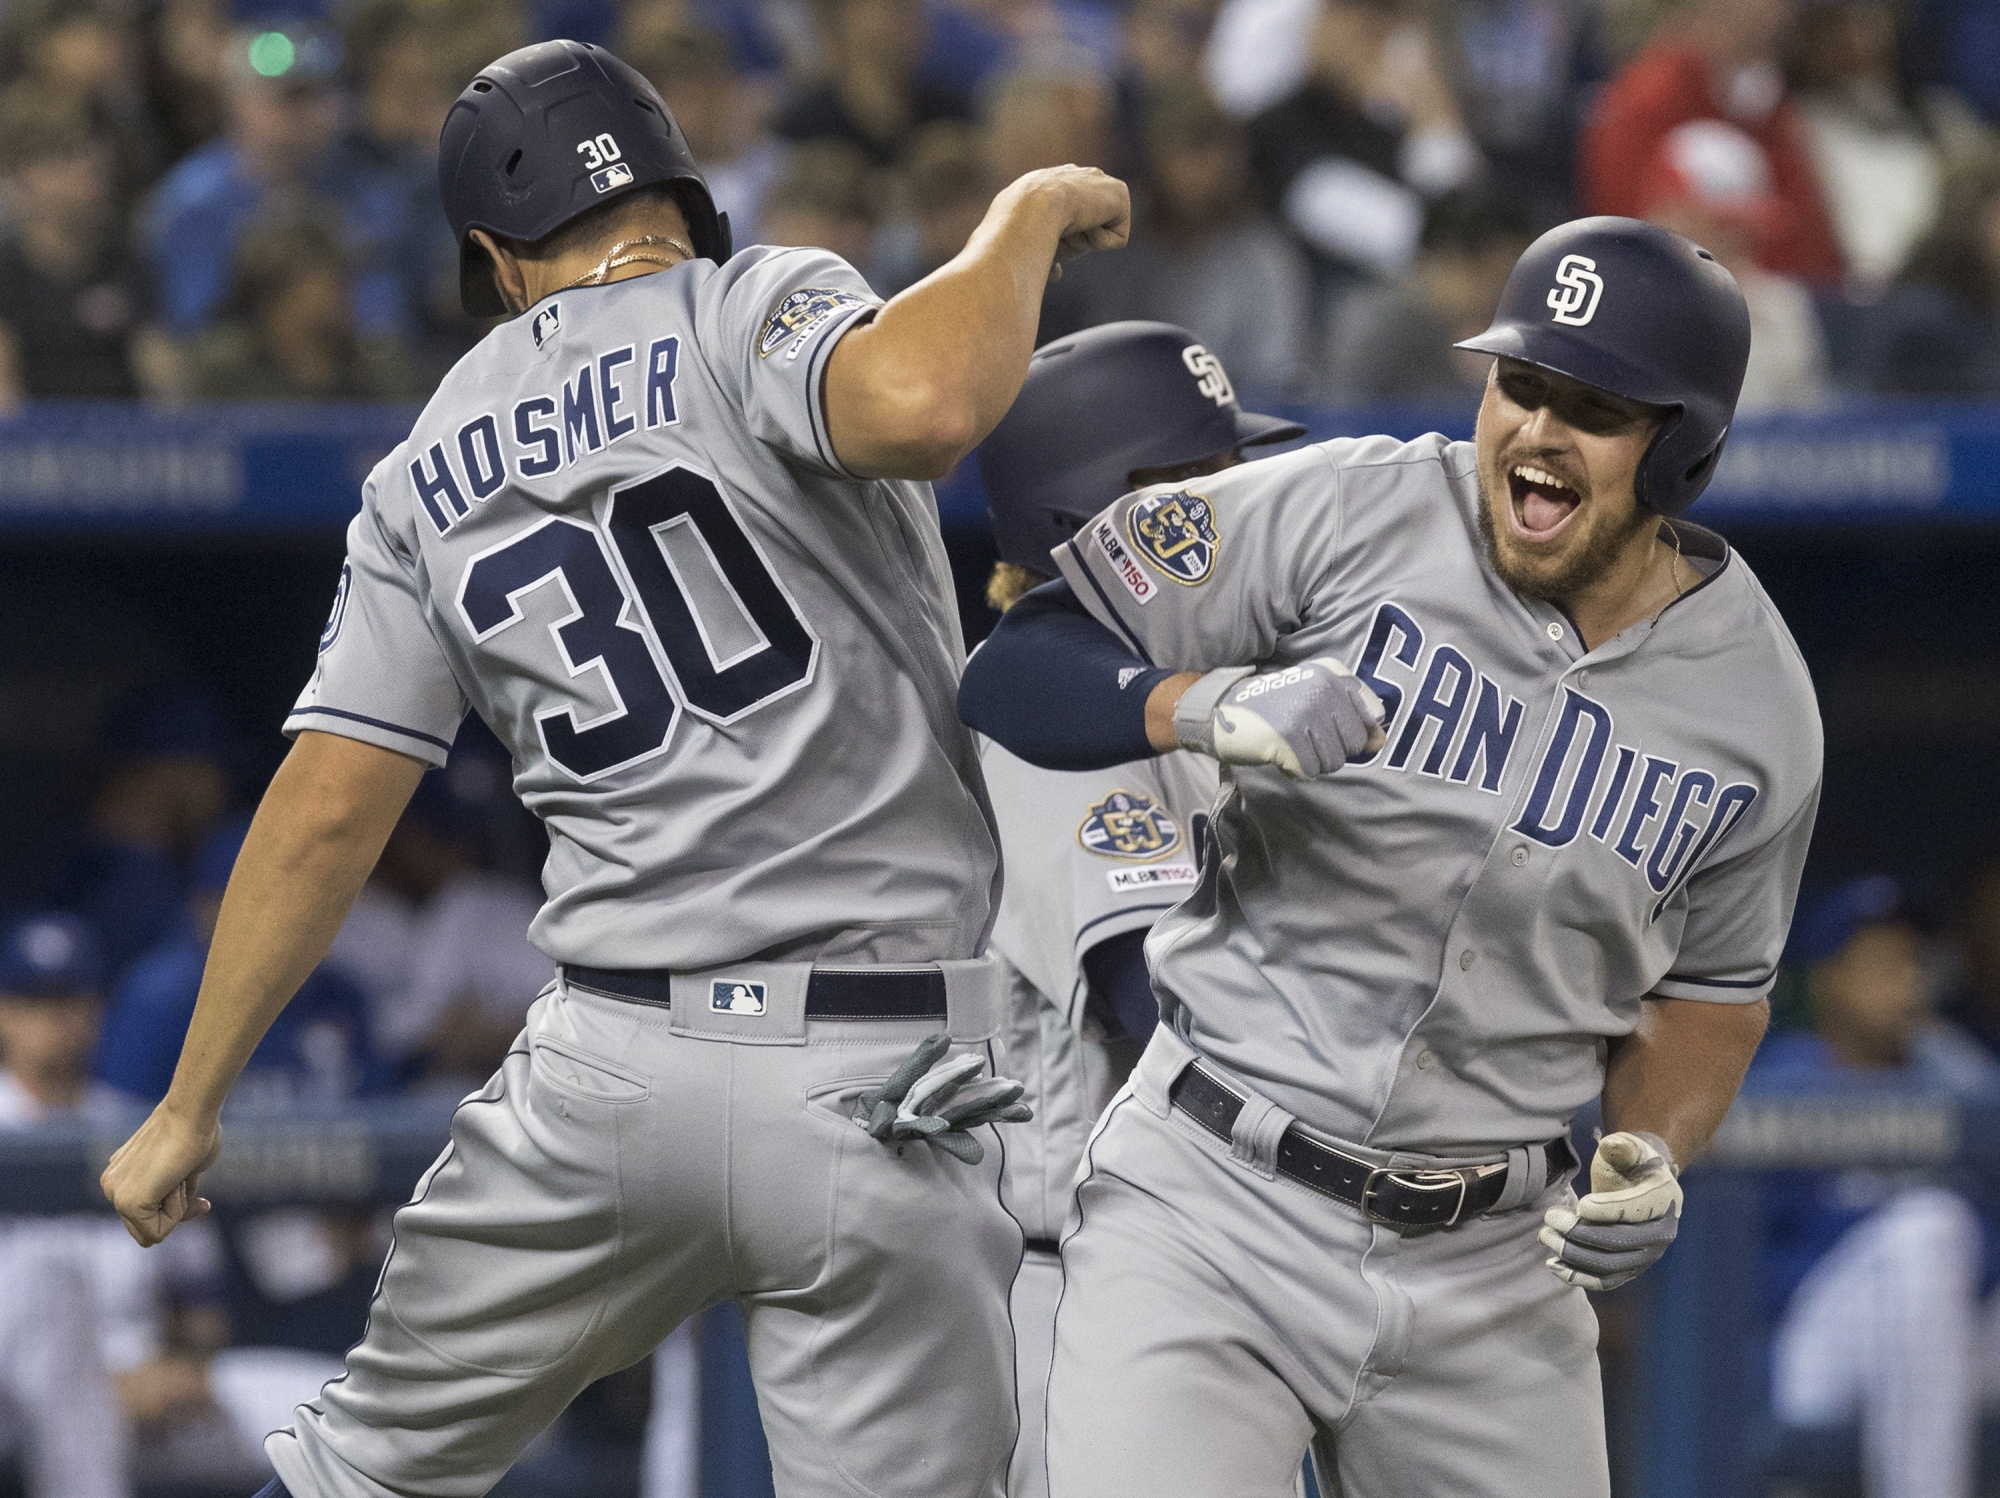 Padres Hit Team-record 7 HRs, Rout Jays 19-4, Win 5th In